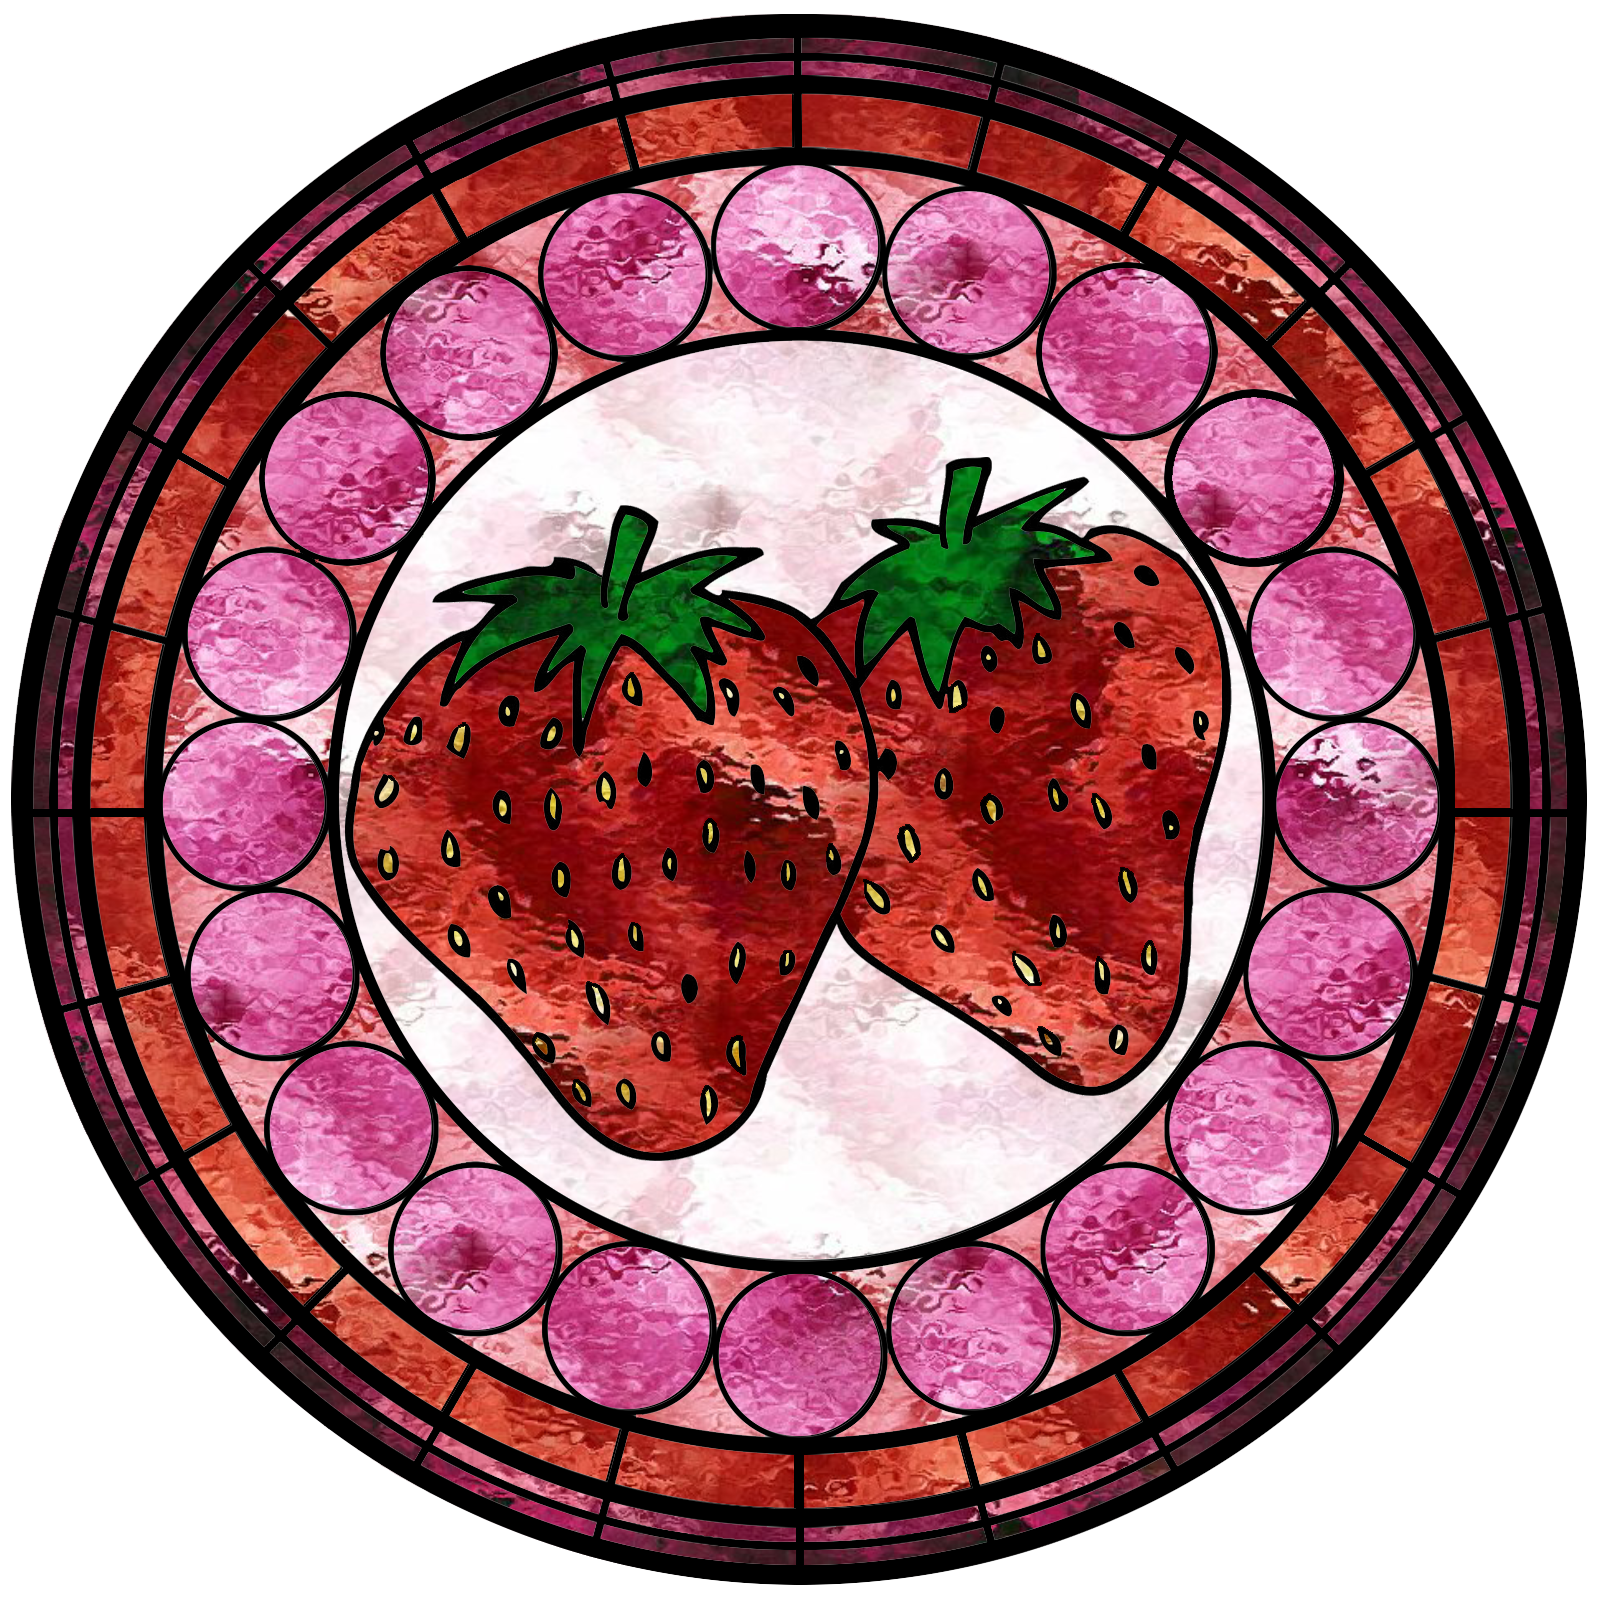 Strawberries clipart strawberry drawing. Stained glass window by